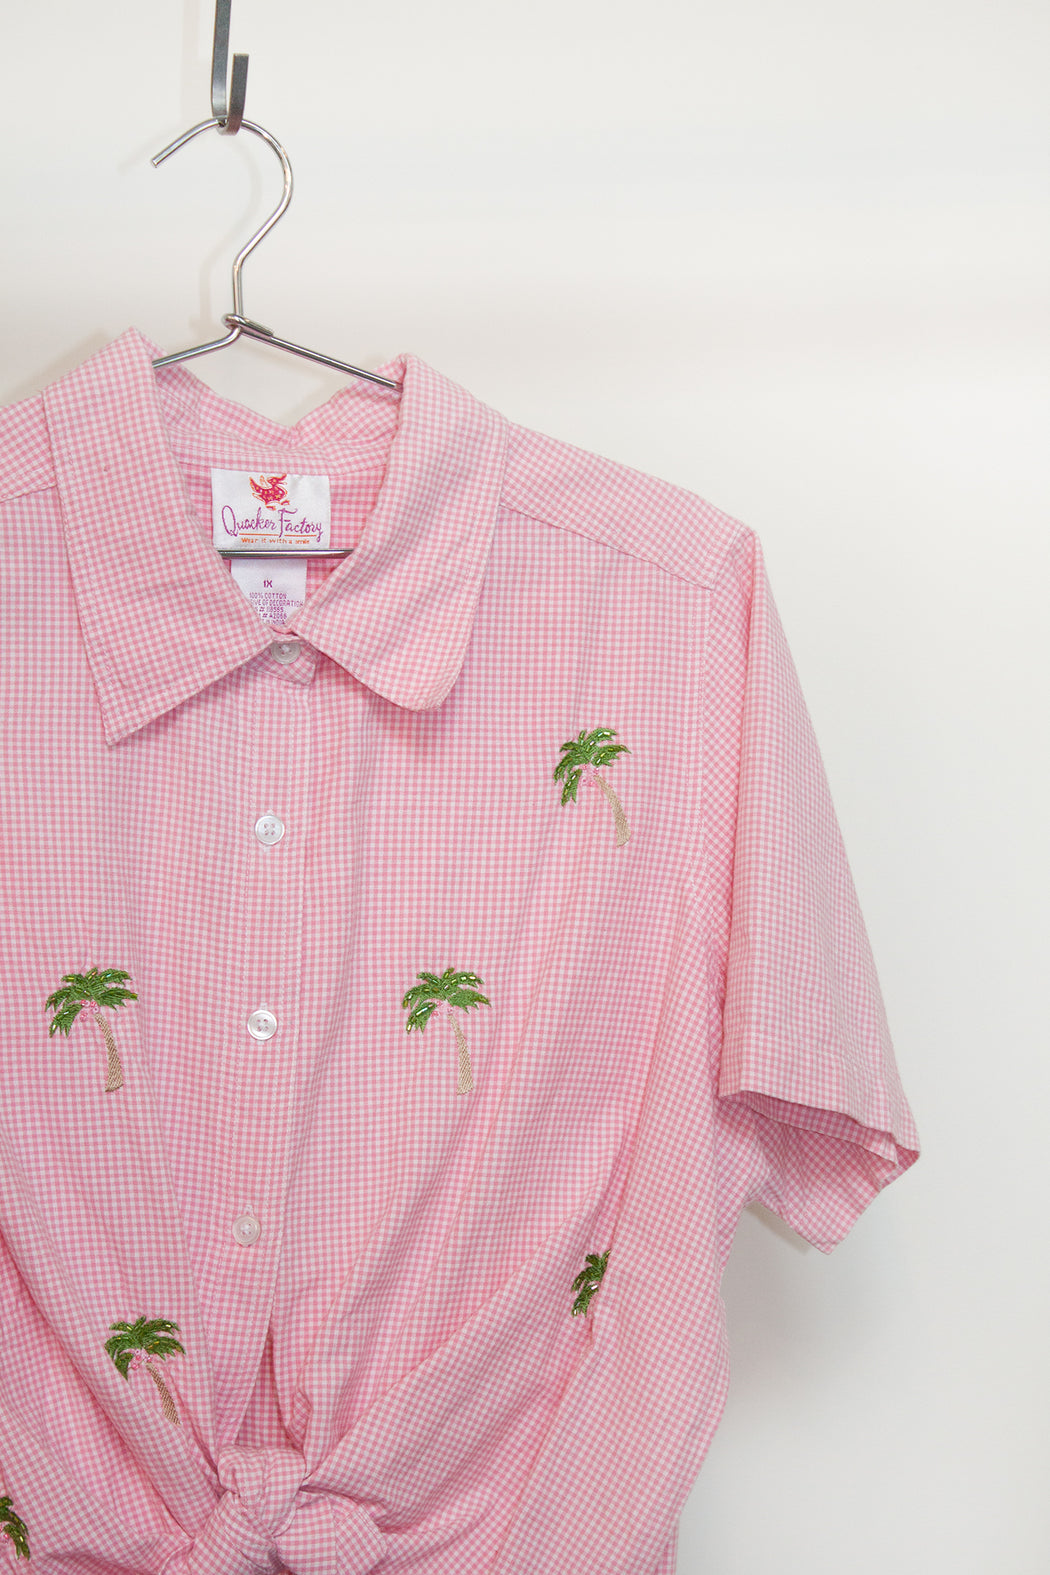 Vintage Beaded Palm Shirt